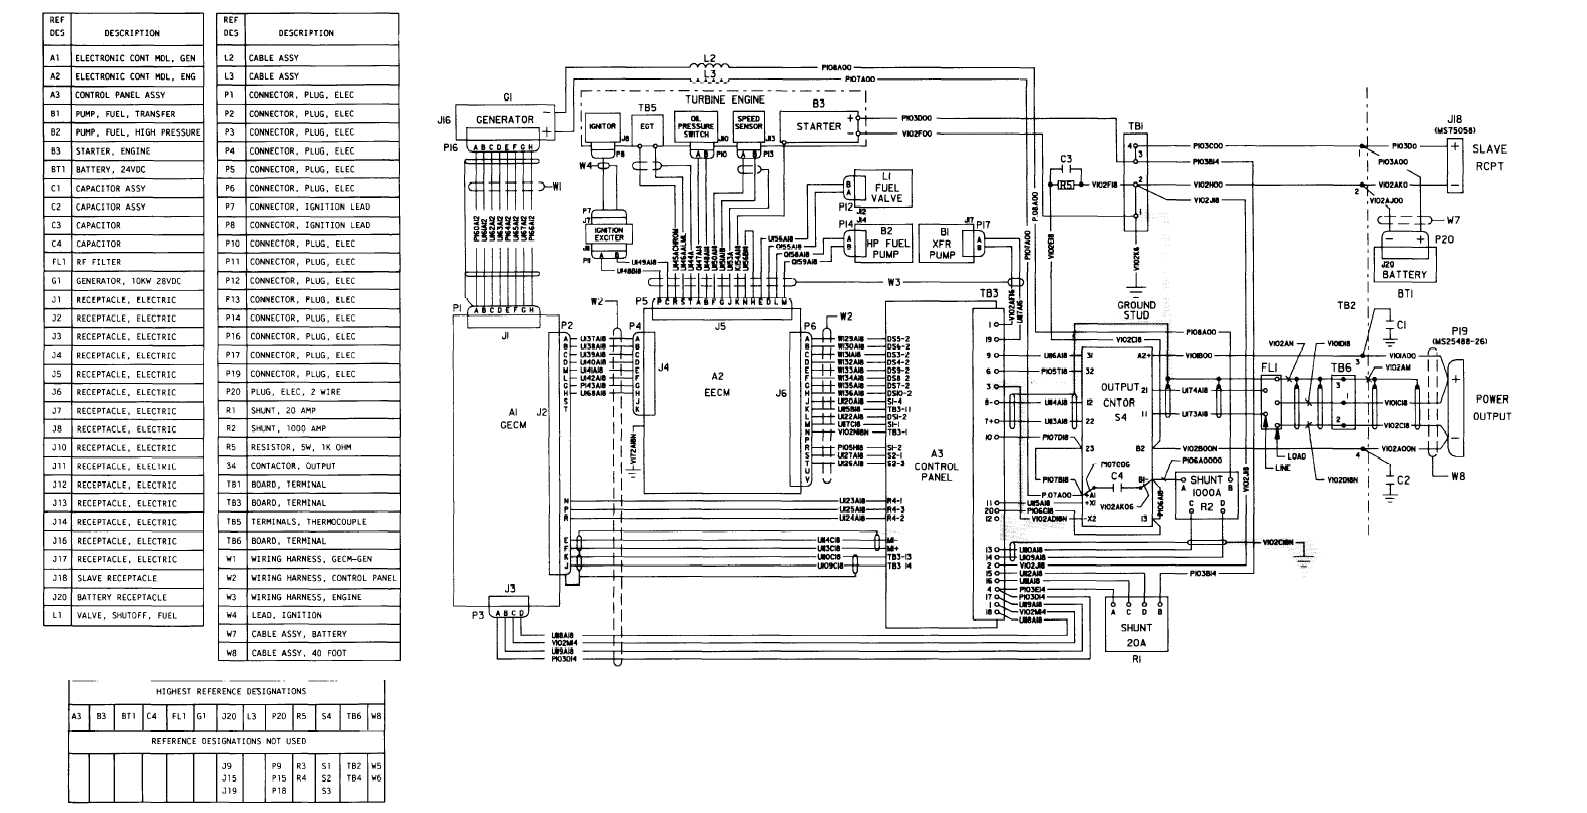 TM 5 6115 612 12_300_1 fo 3 generator set wiring diagram generator panel wiring diagram at bakdesigns.co